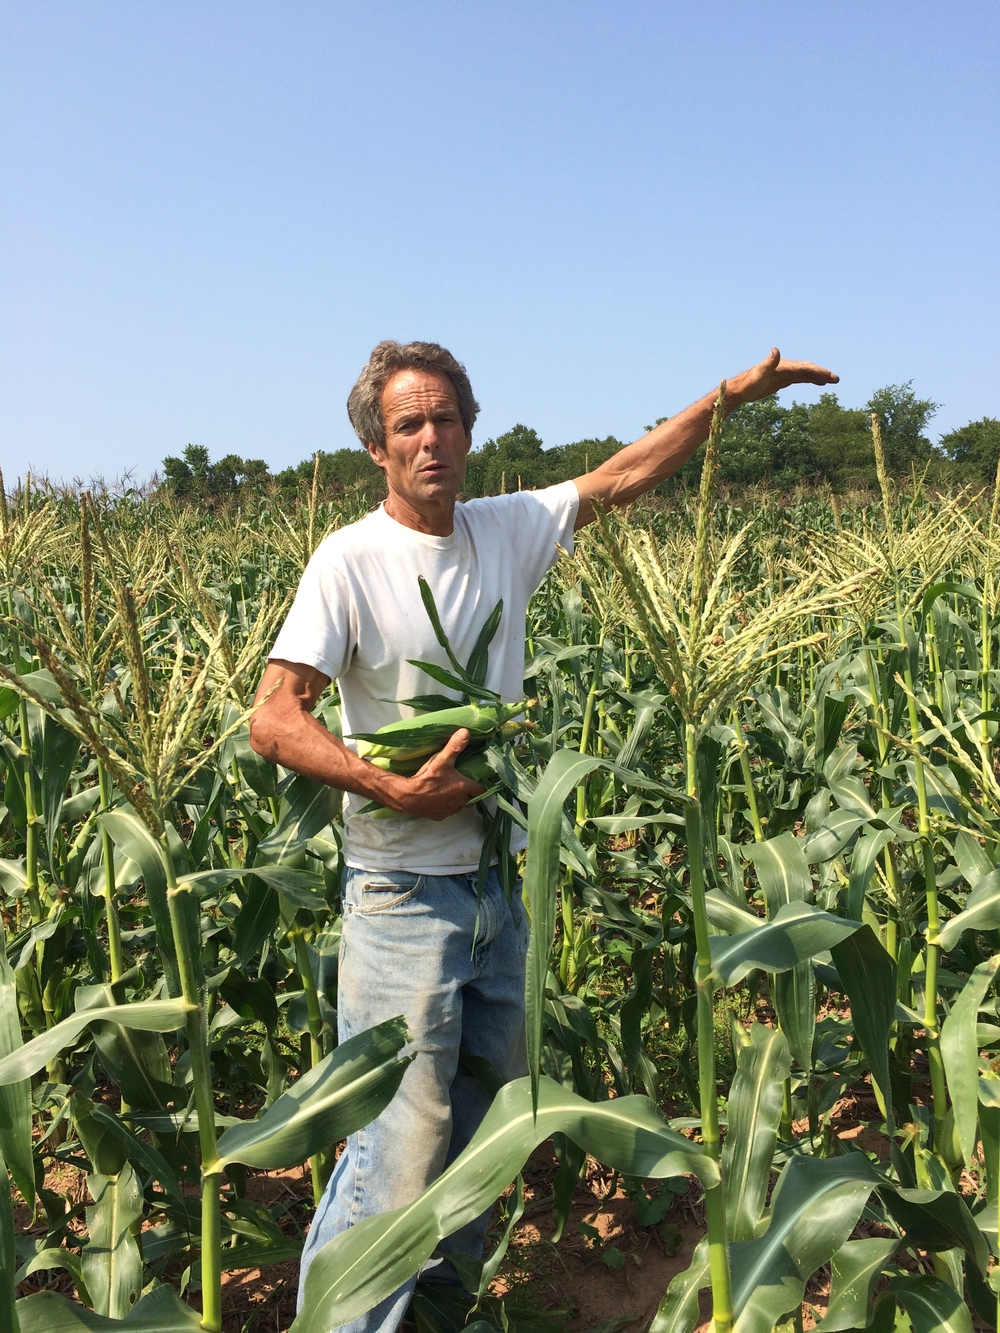 Steven, telling me about how the corn will get just a bit taller before it's done growing for the year